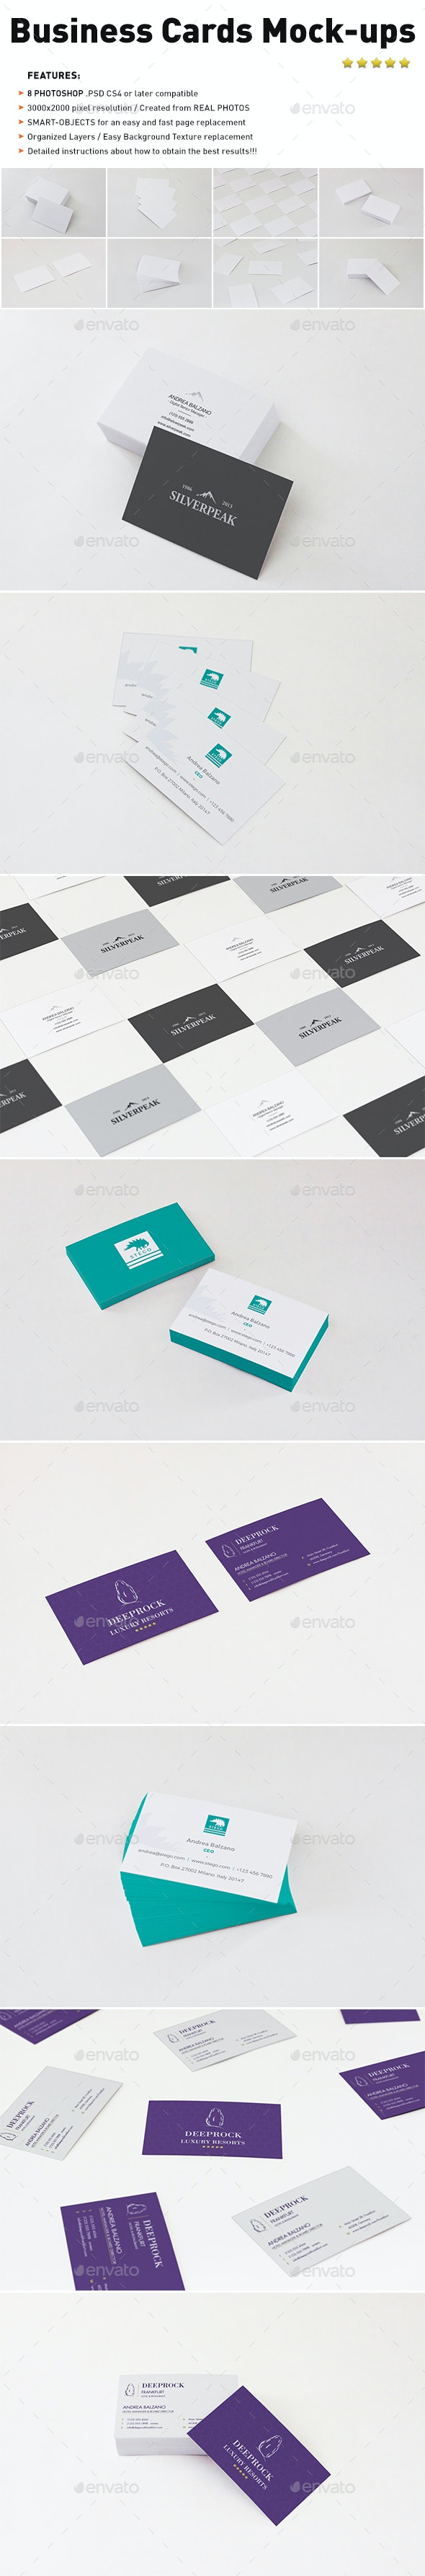 Photorealistic Business Cards Mockups - Business Cards Print